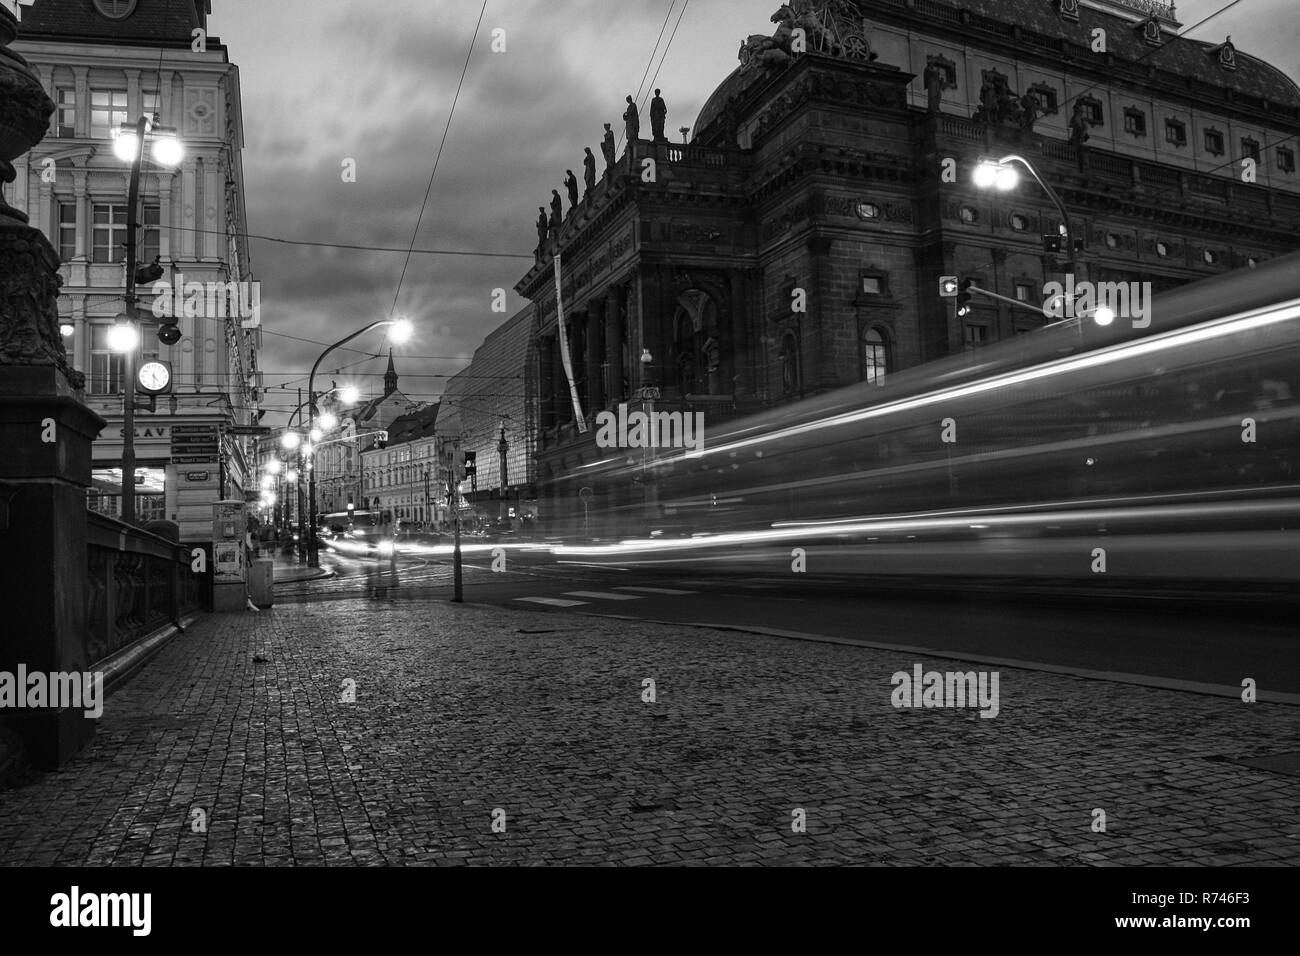 Car light trails in the city, traffic in Prague, black and white by night with street lights on. Horizontal, low angle view. - Stock Image